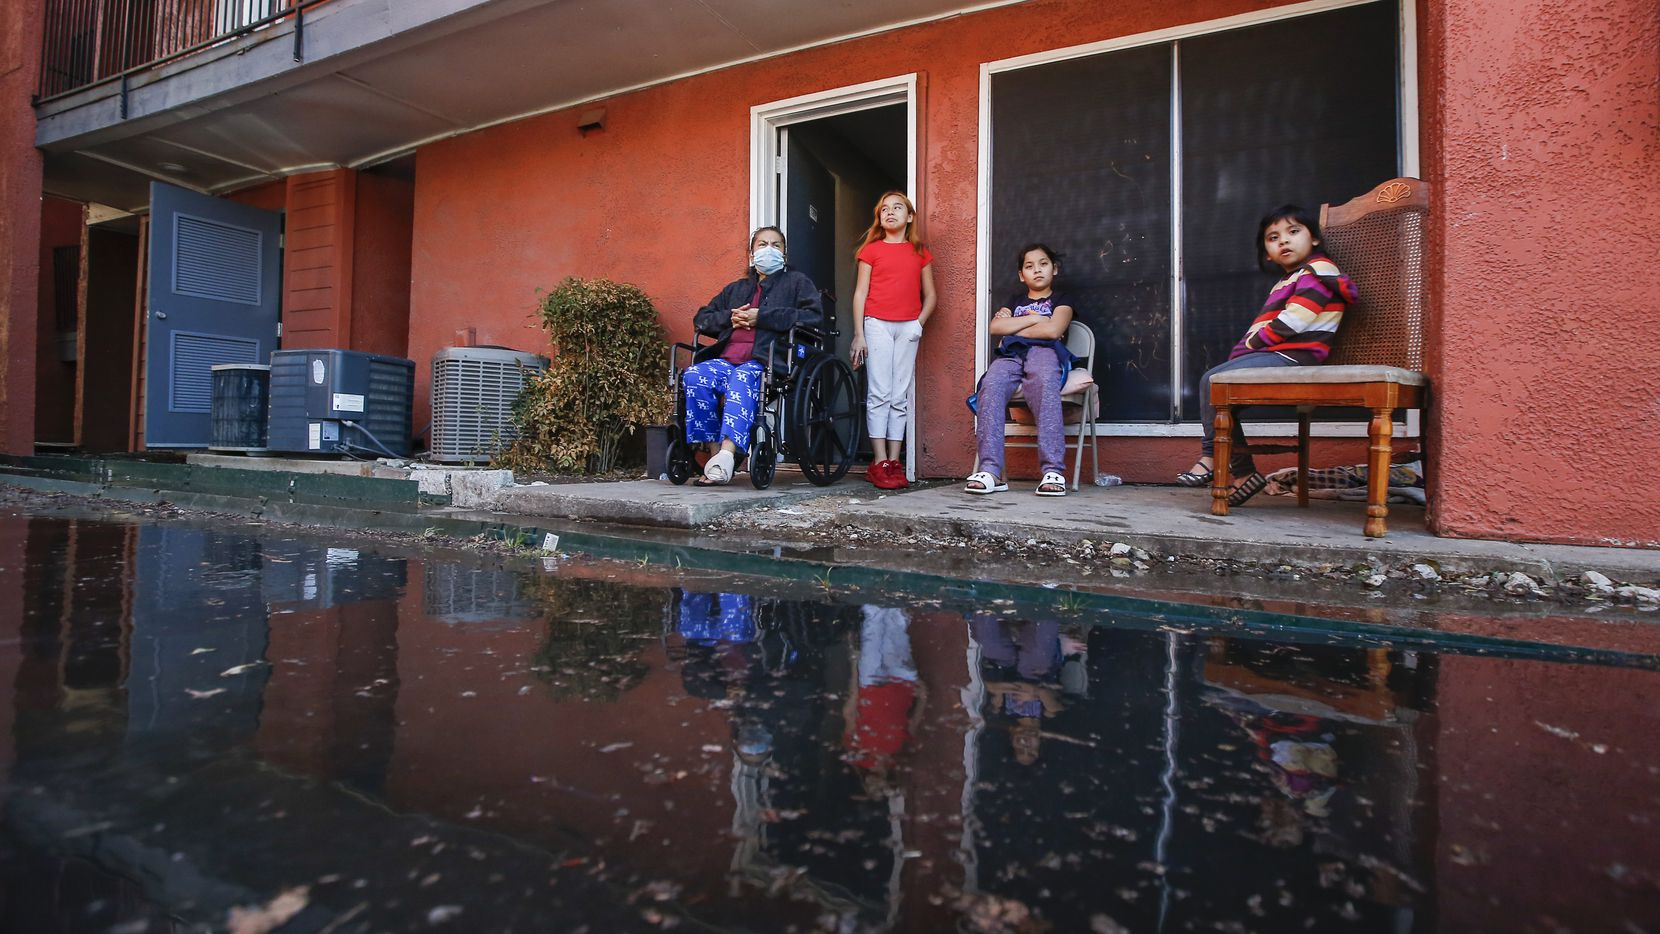 From left: Modesta Gonzalez, 60; Deveany Mendoza, 10; Alina Mendoza, 6; and Guadelupe Mendoza, 4, are reflected in water that flooded their apartment last week at Villas del Solamar in Dallas.